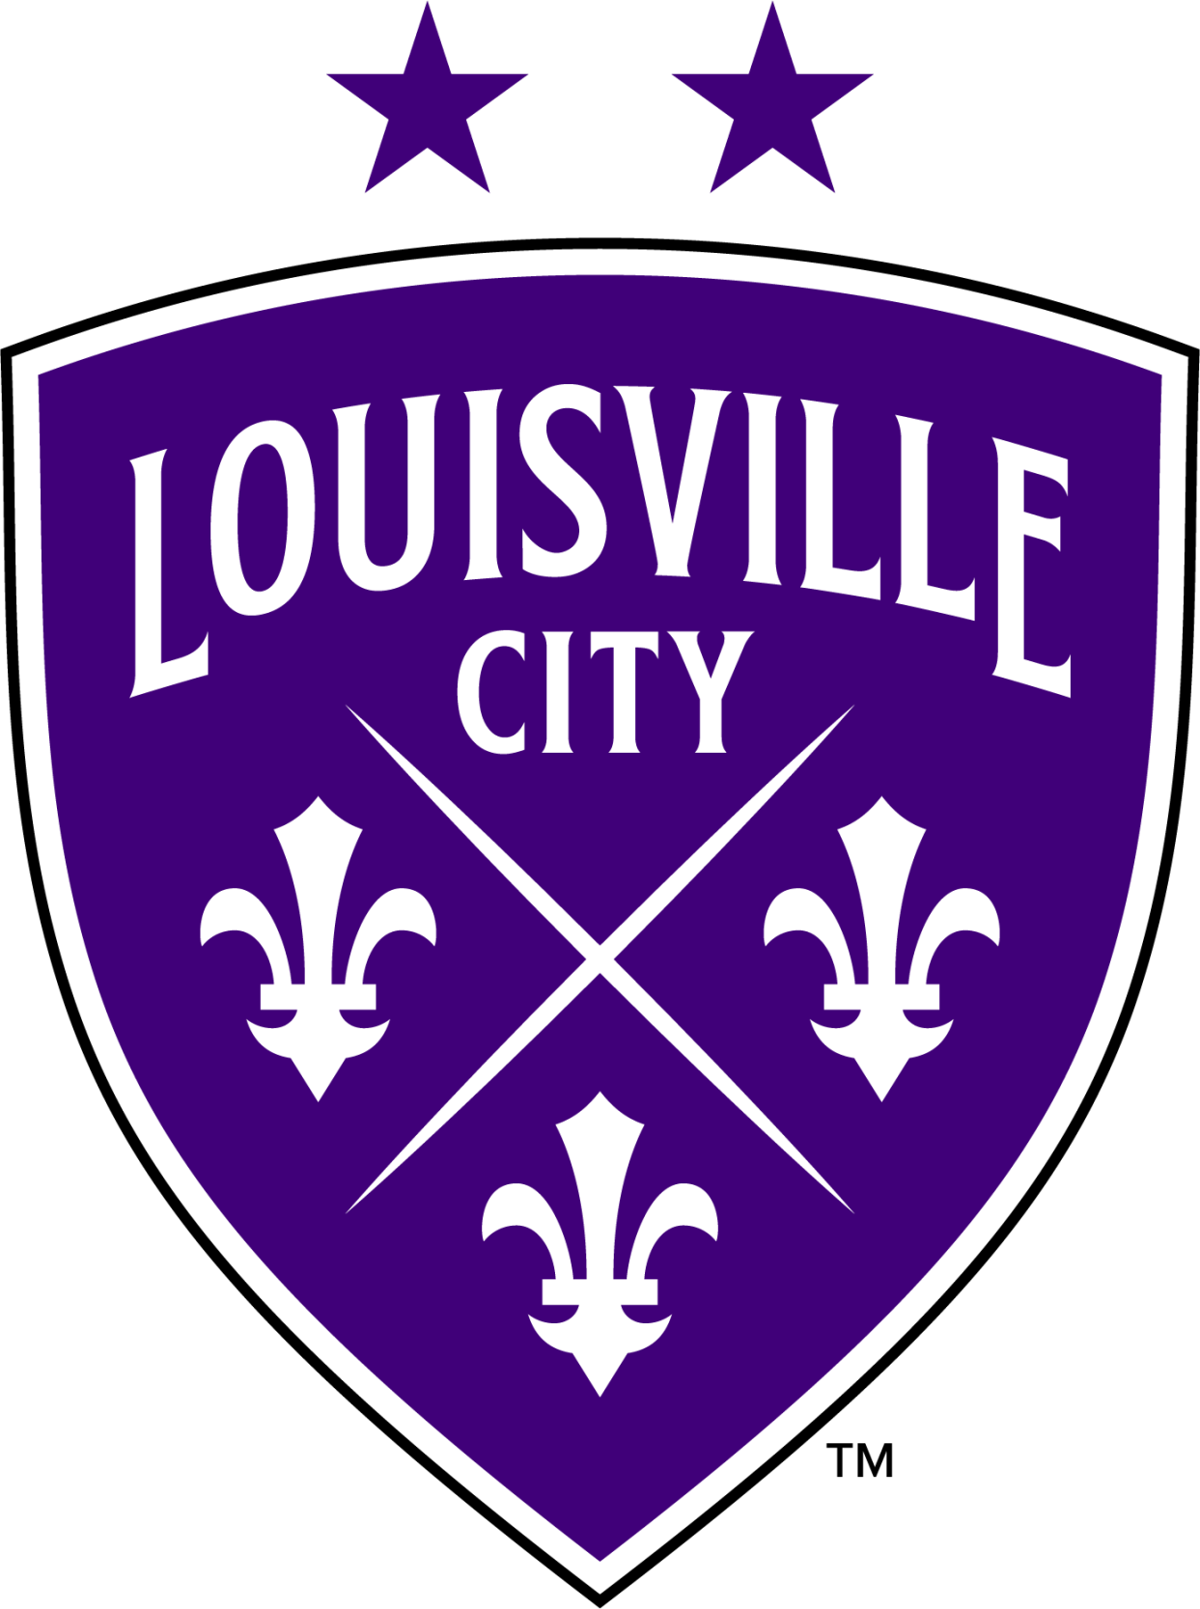 LOUISVILLE CITY FC - NEW LOGO 11-17-2020  (1).png